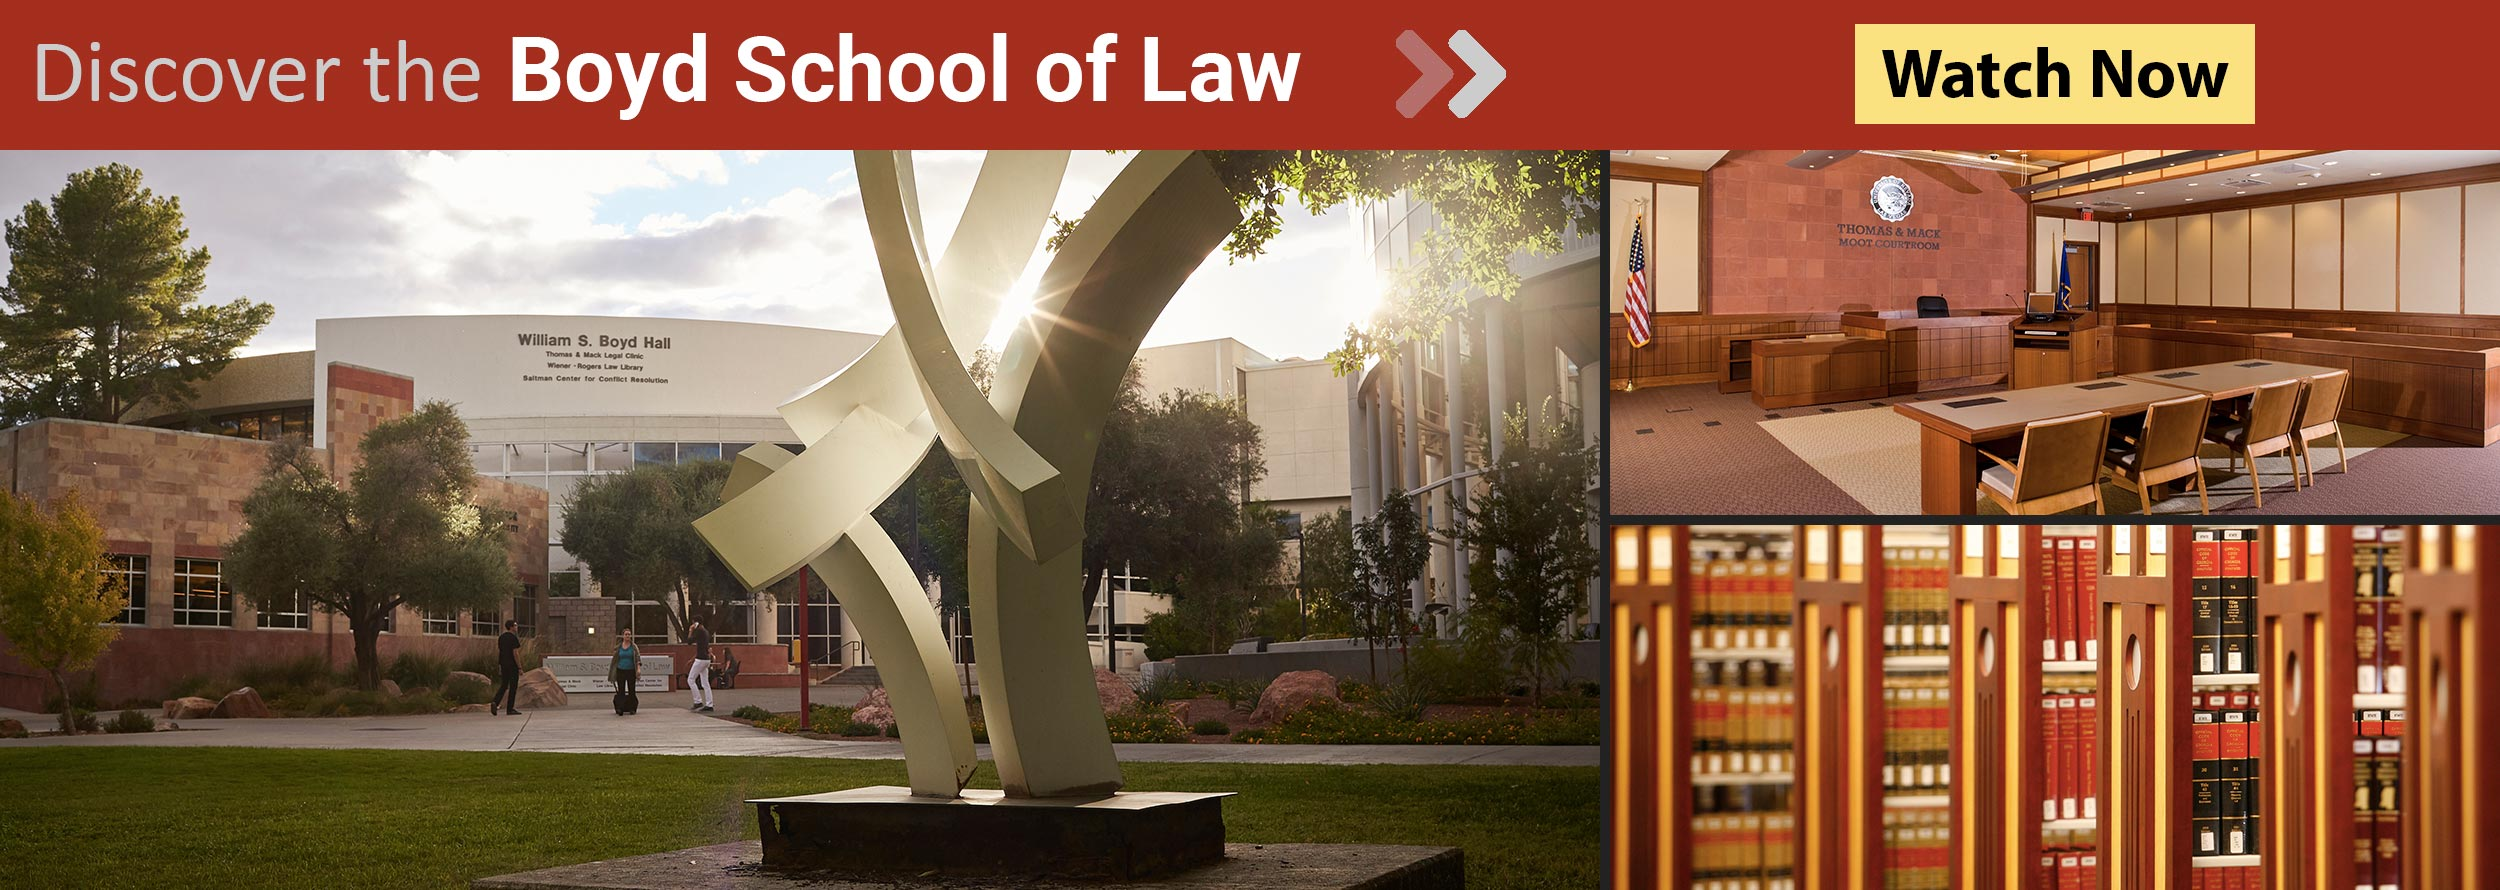 Discover the Boyd School of Law - Watch Now